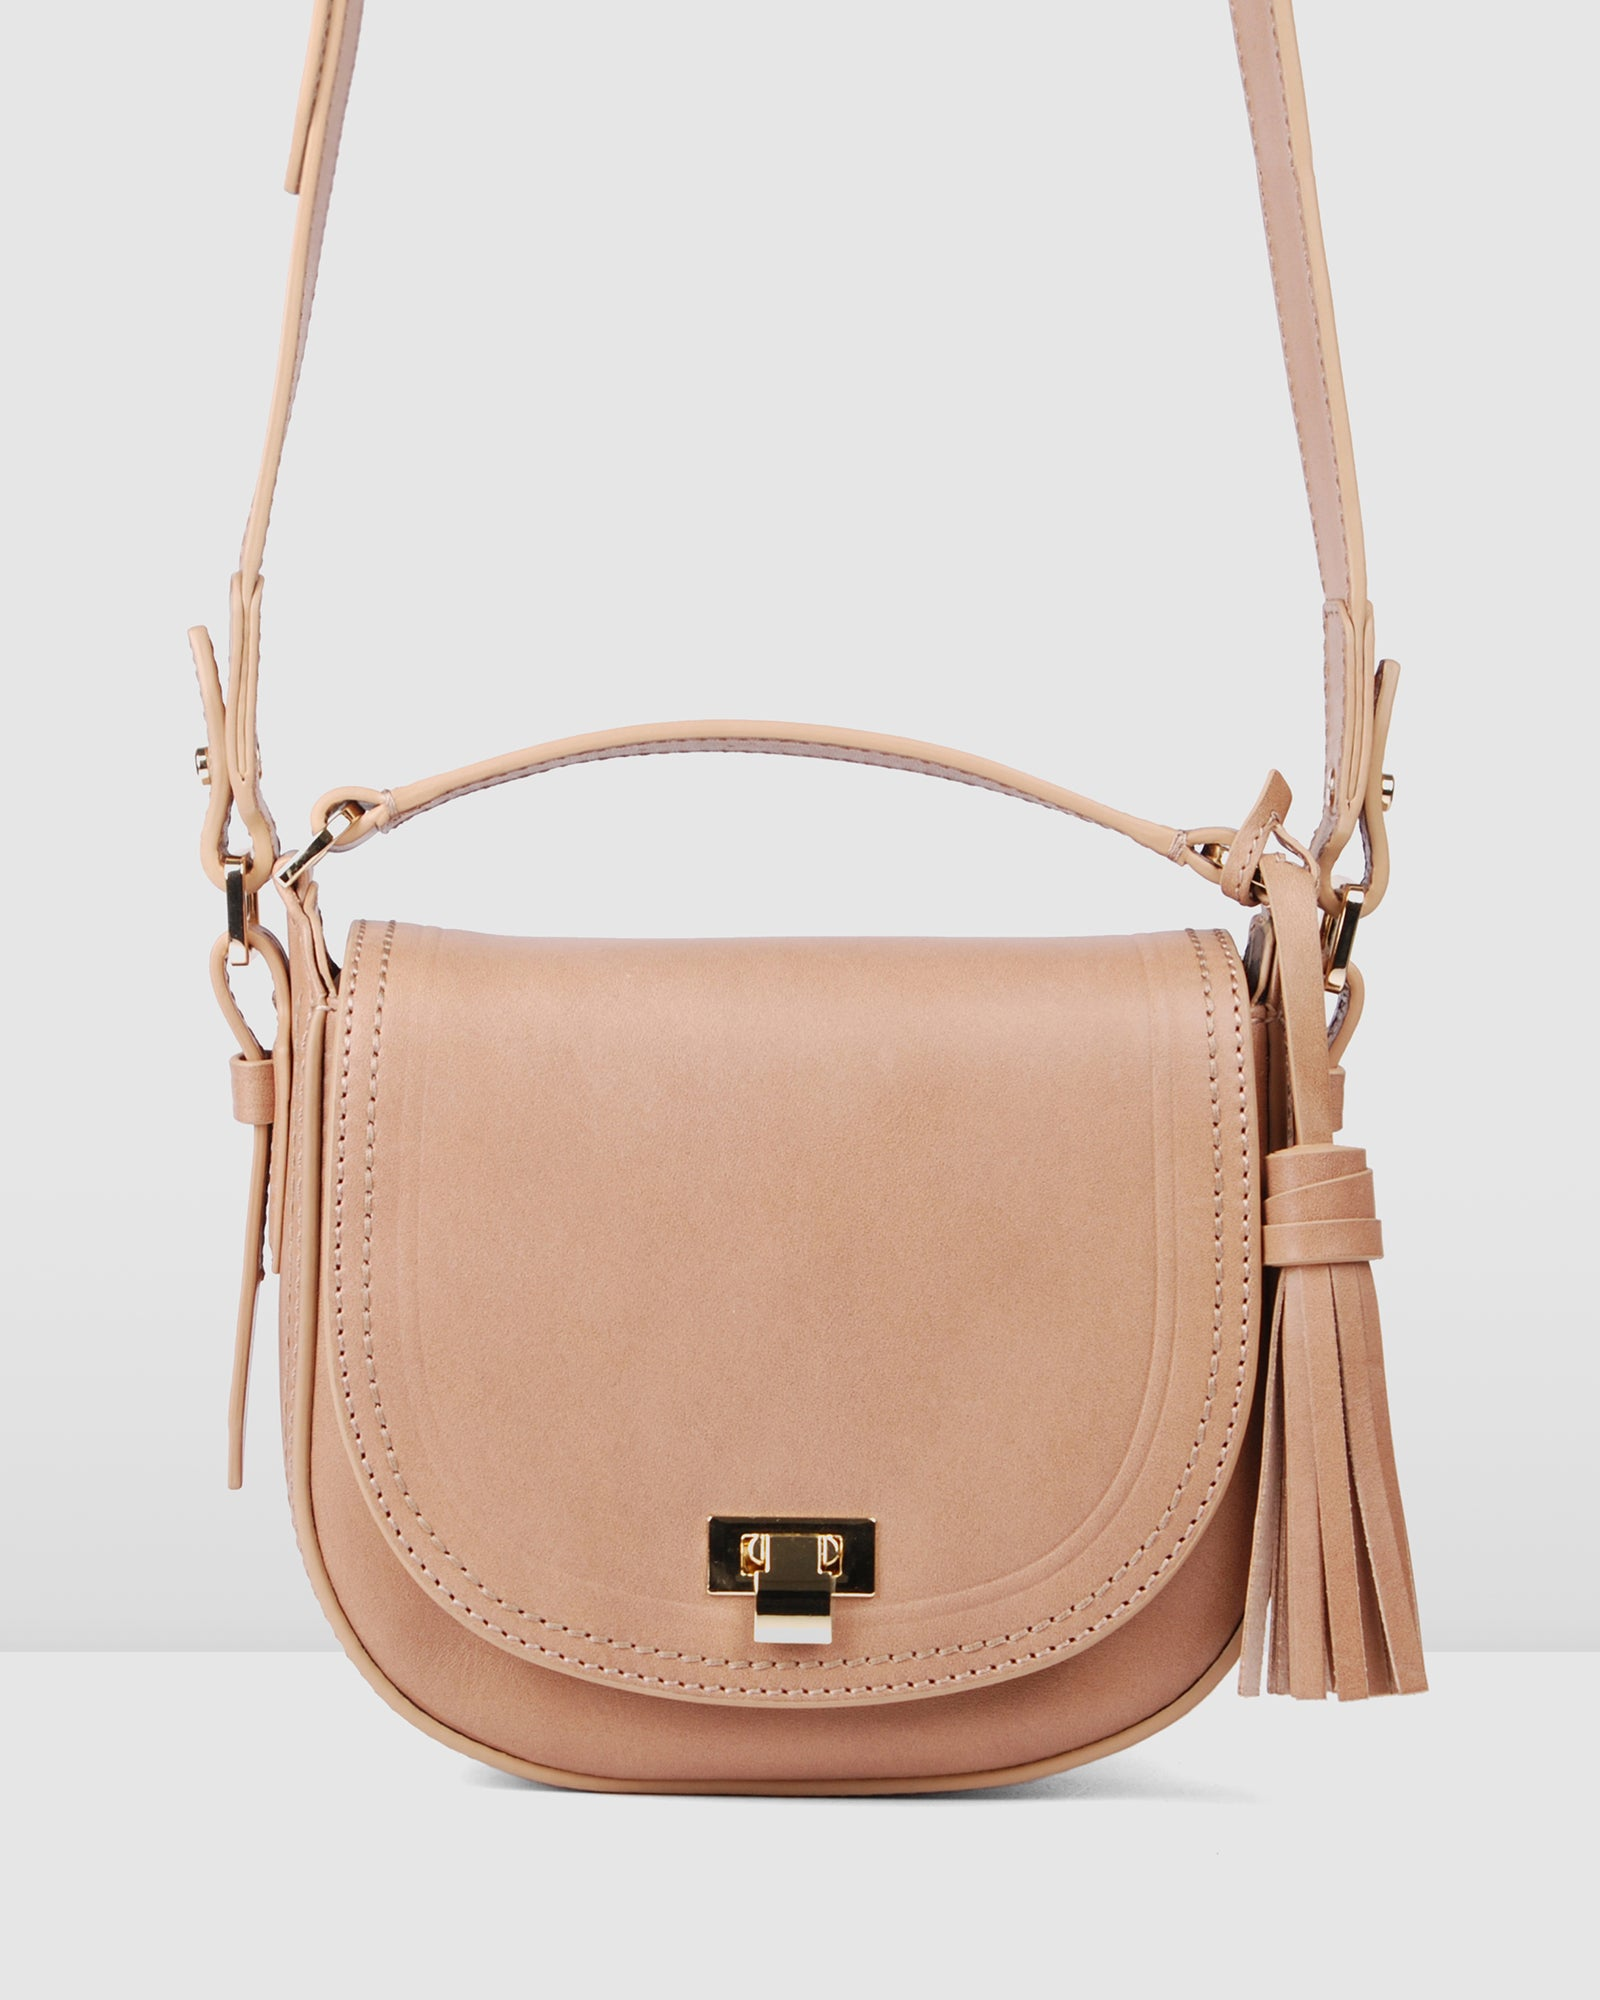 PALERMO CROSS BODY BAG TAN LEATHER